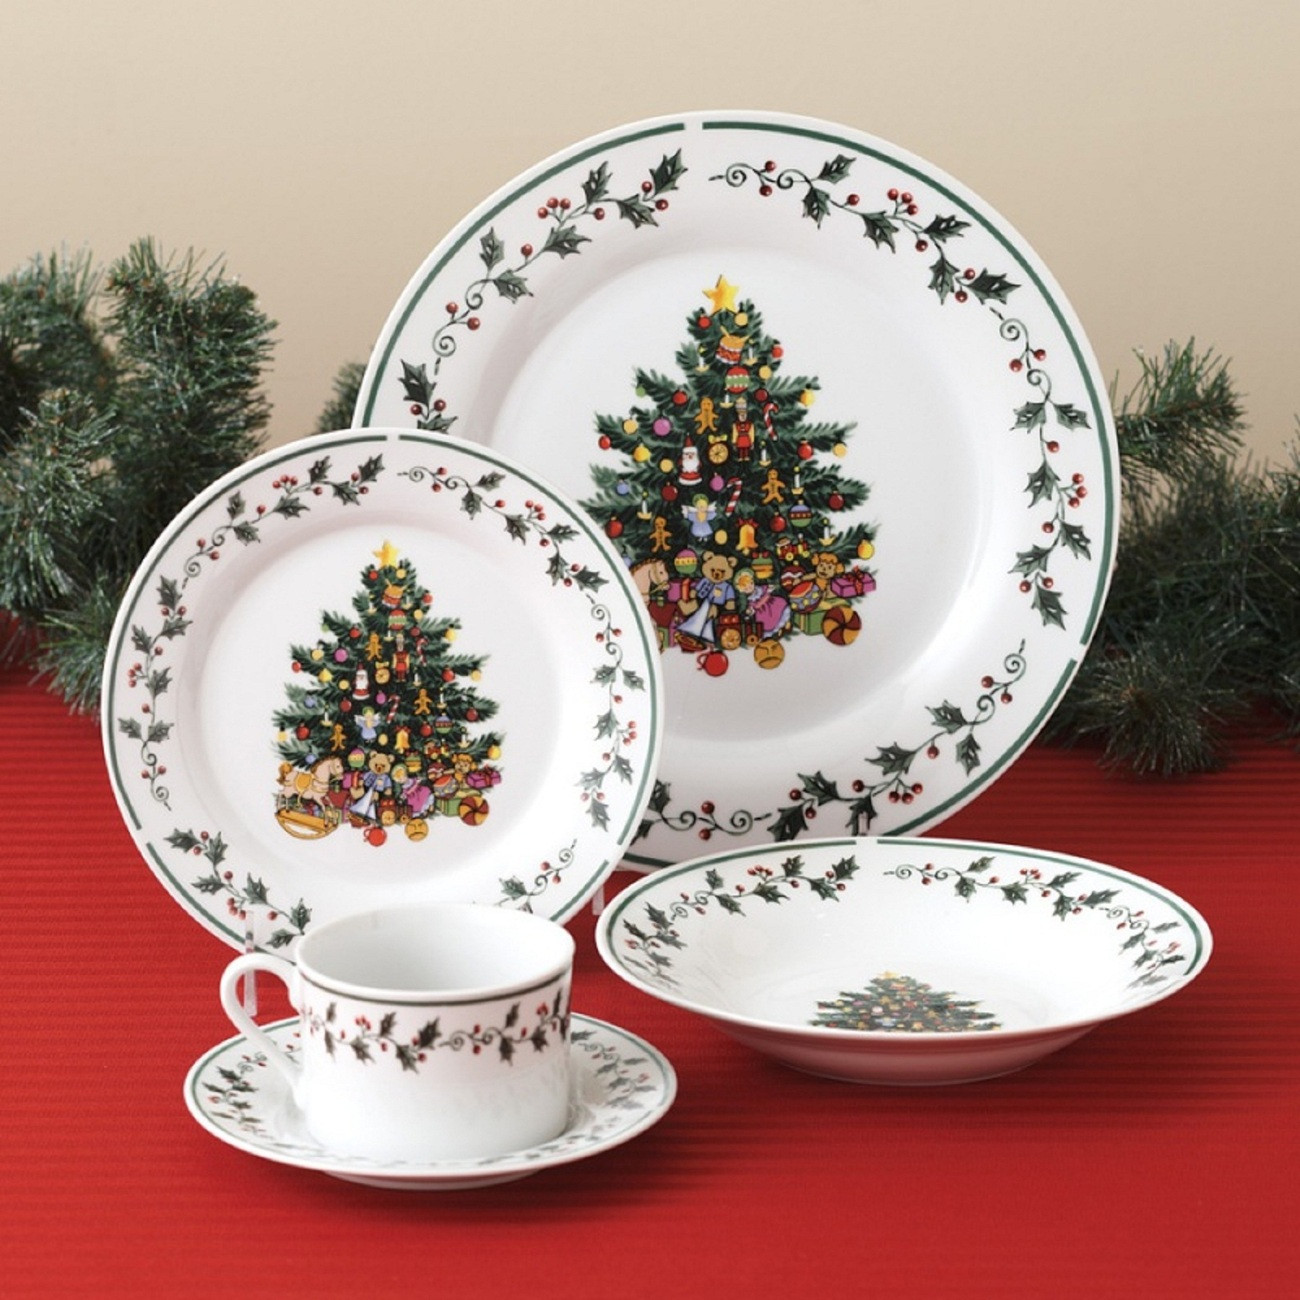 Christmas Dinner Set  Christmas Holidays Tree Trimmings Holly 20 Piece Porcelain